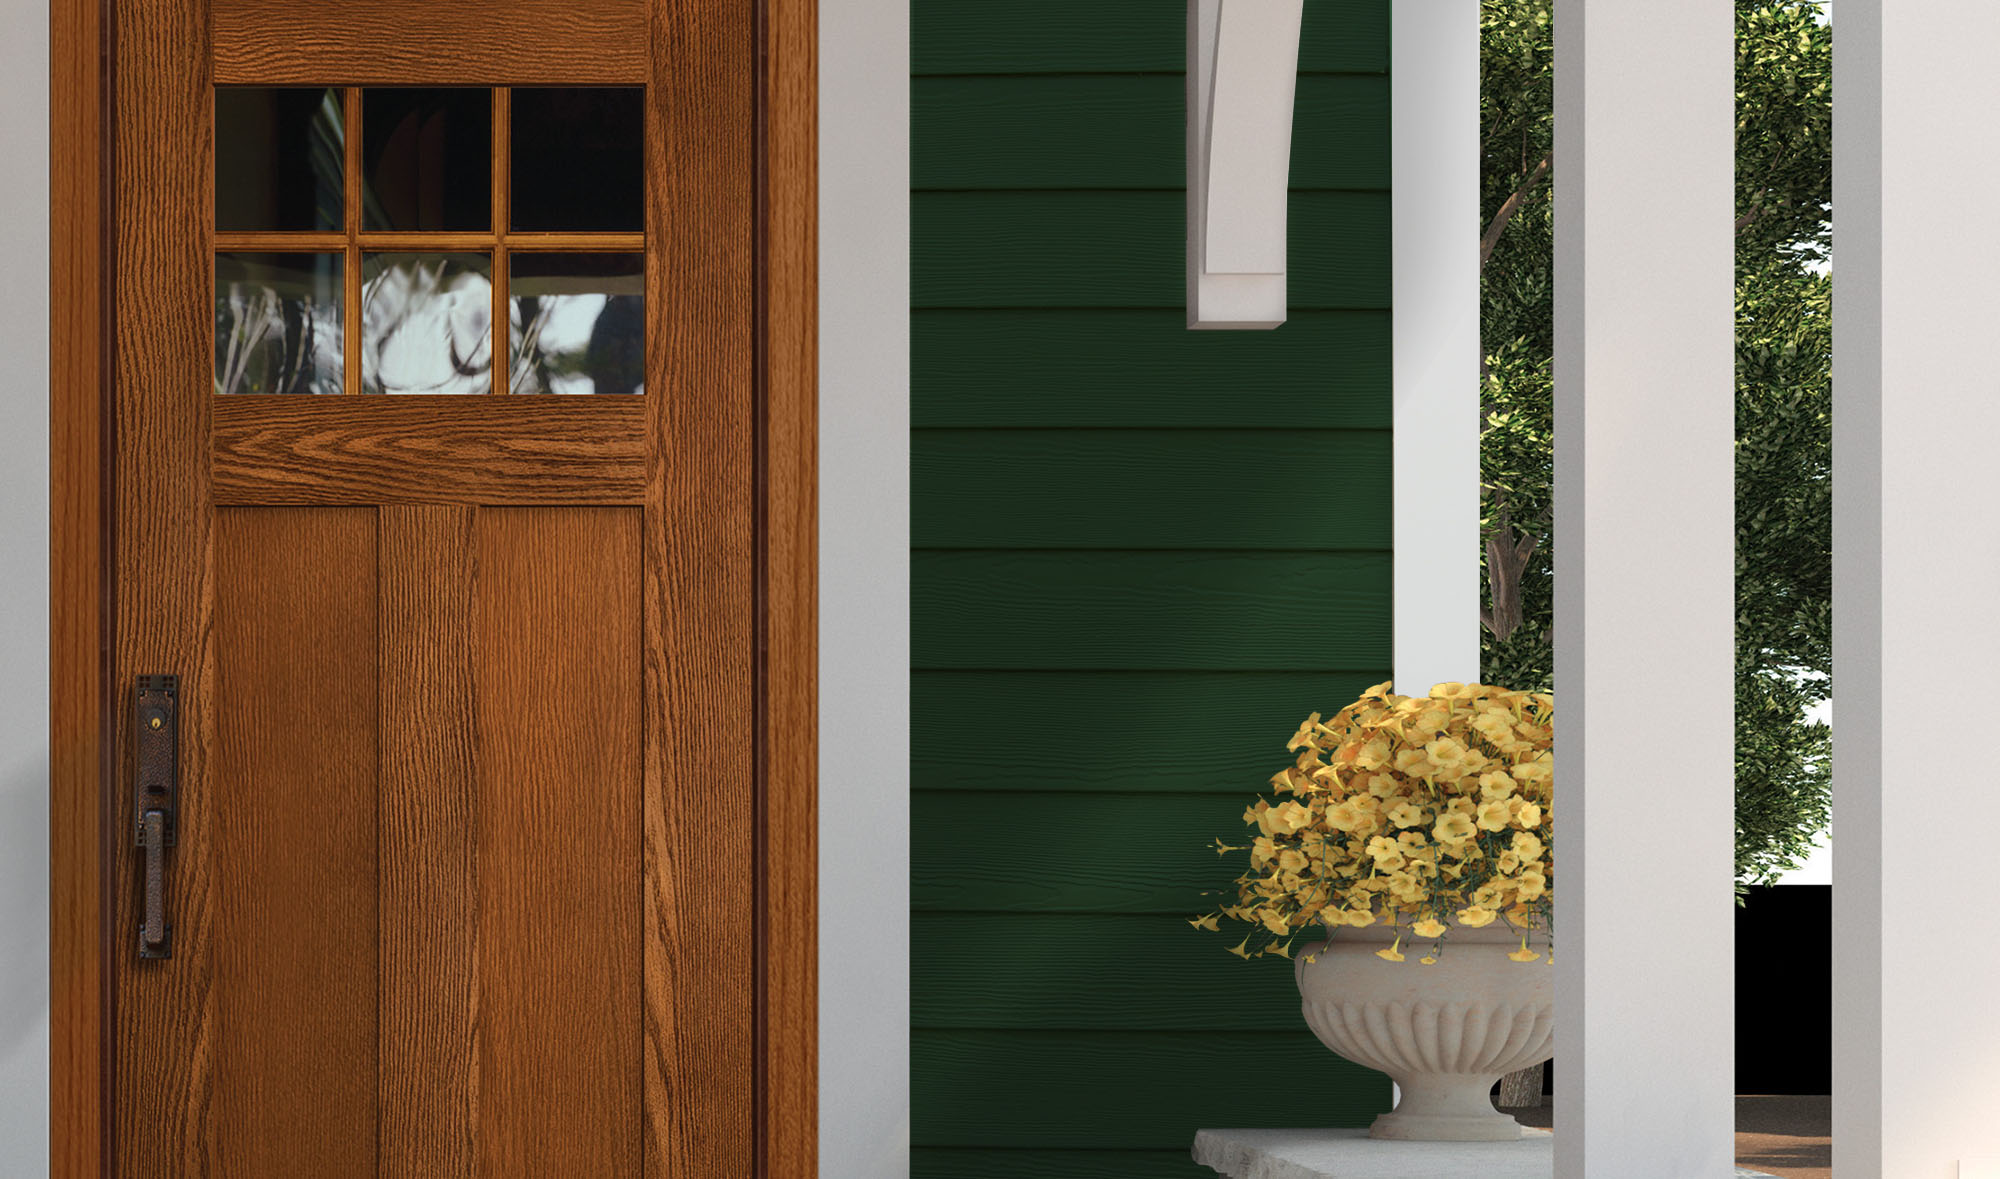 Forest green siding and a real wood front door with white trim and columns.